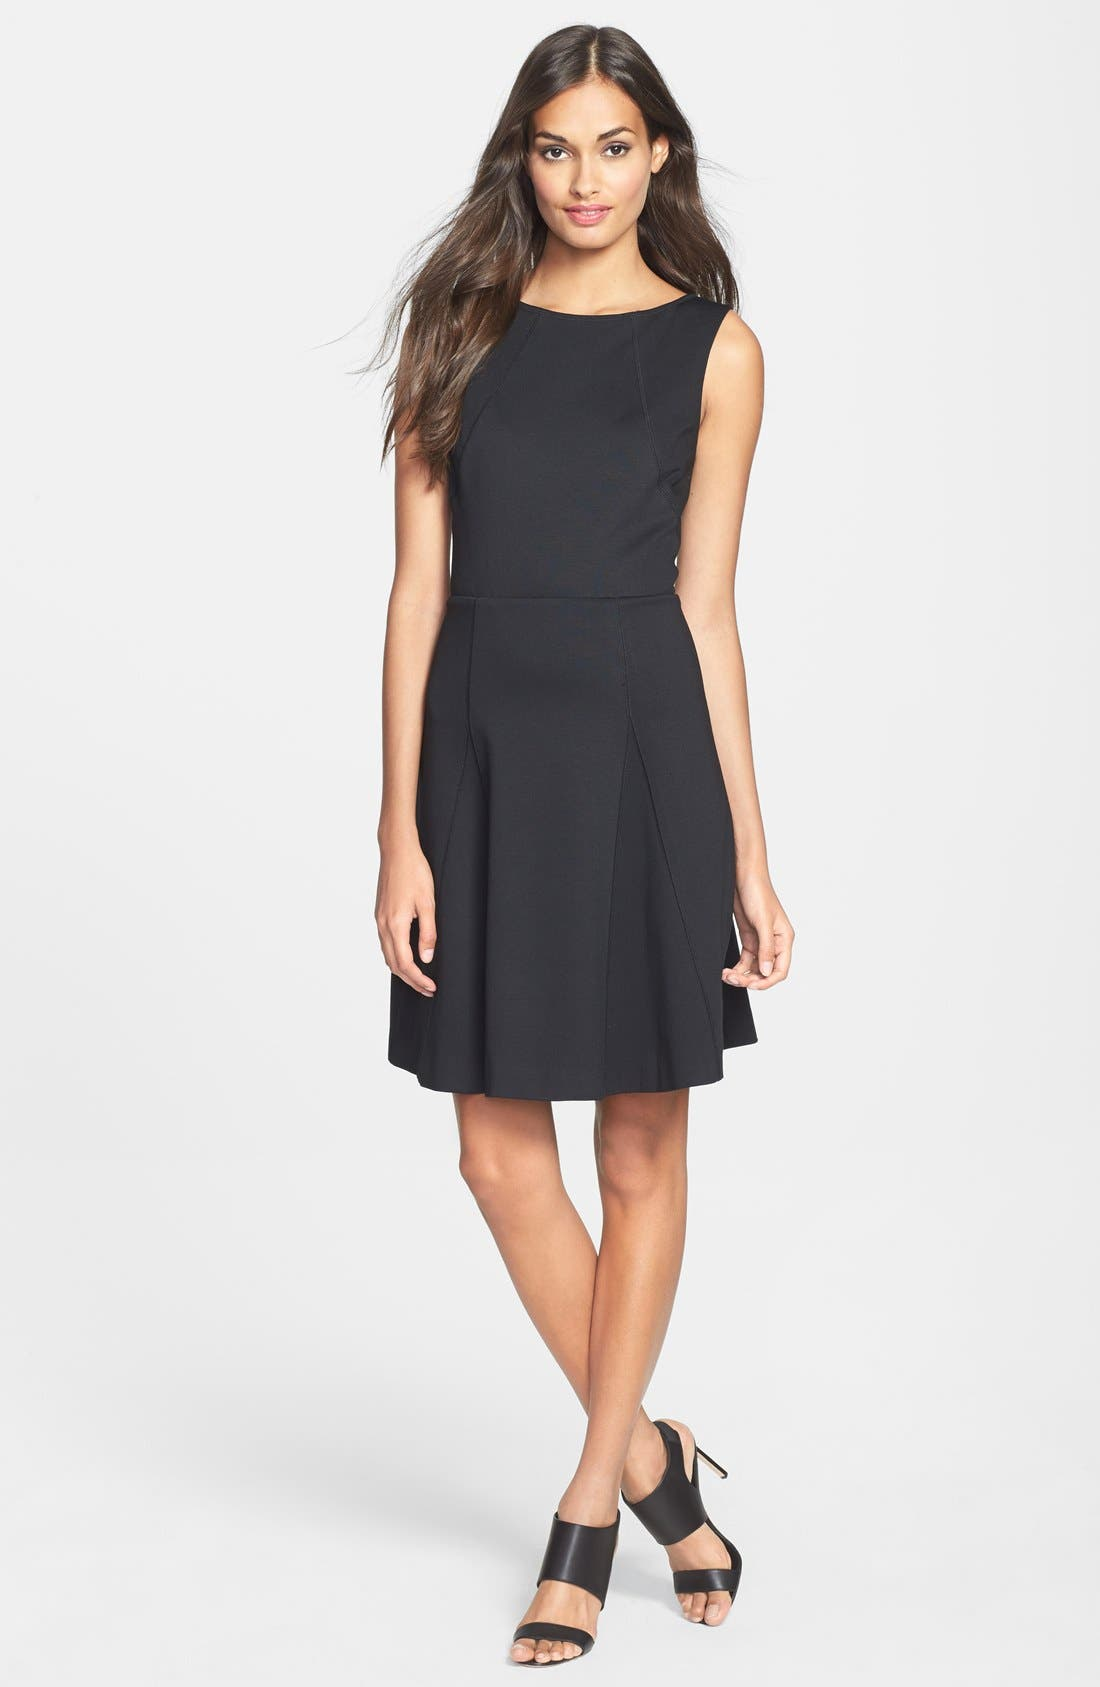 Alternate Image 1 Selected - Trina Turk 'Delphine' Cutout Ponte Knit Fit & Flare Dress